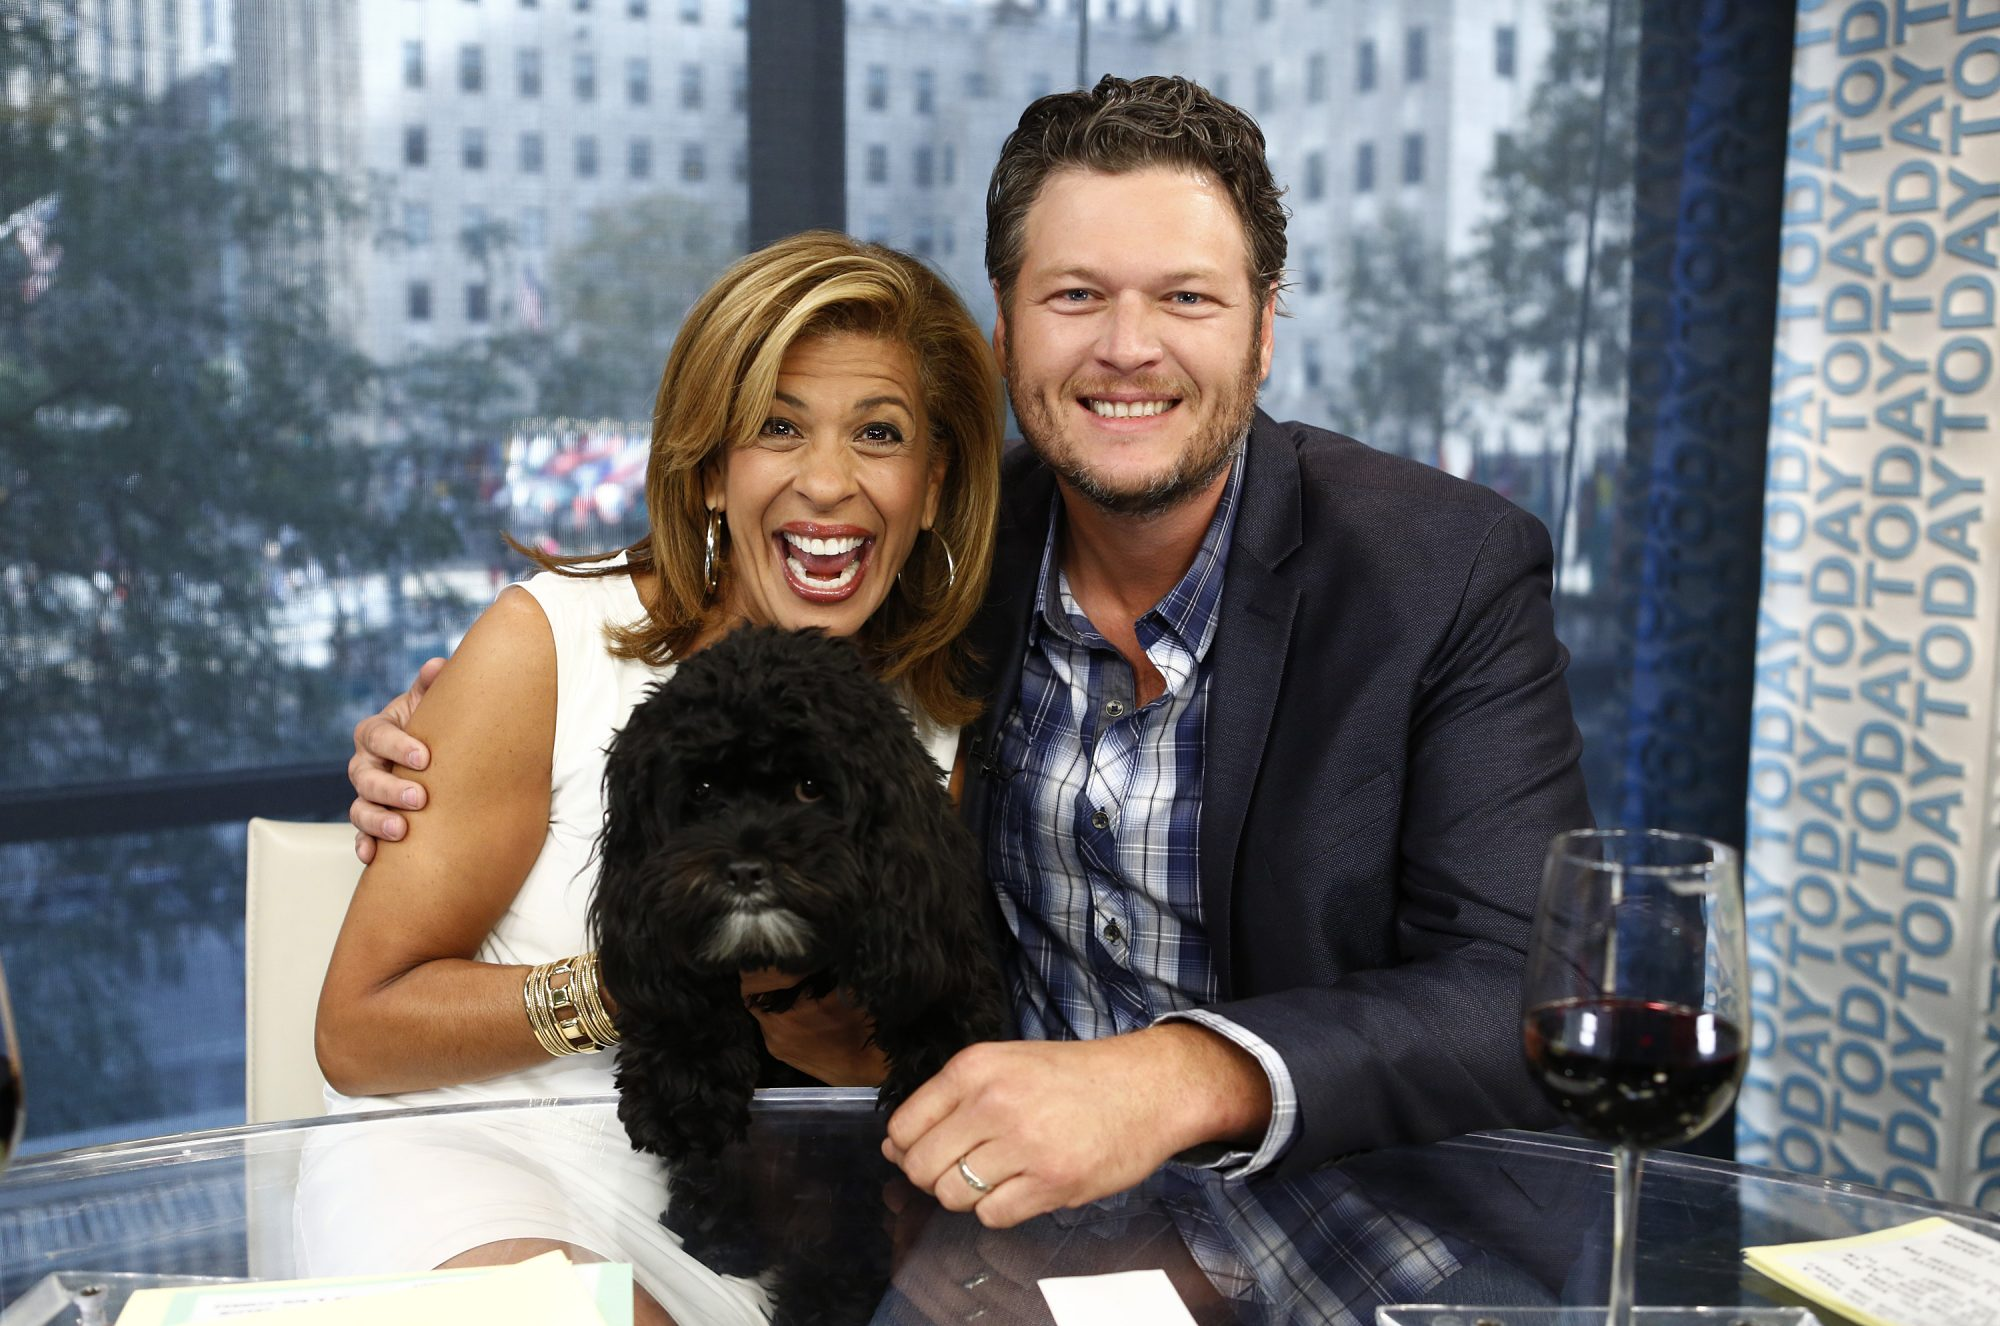 """TODAY -- Pictured: (l-r) Hoda Kotb and Blake Shelton appear on NBC News' """"Today"""" show -- (Photo by: Peter Kramer/NBC/NBC Newswire/NBCUniversal via Getty Images)"""